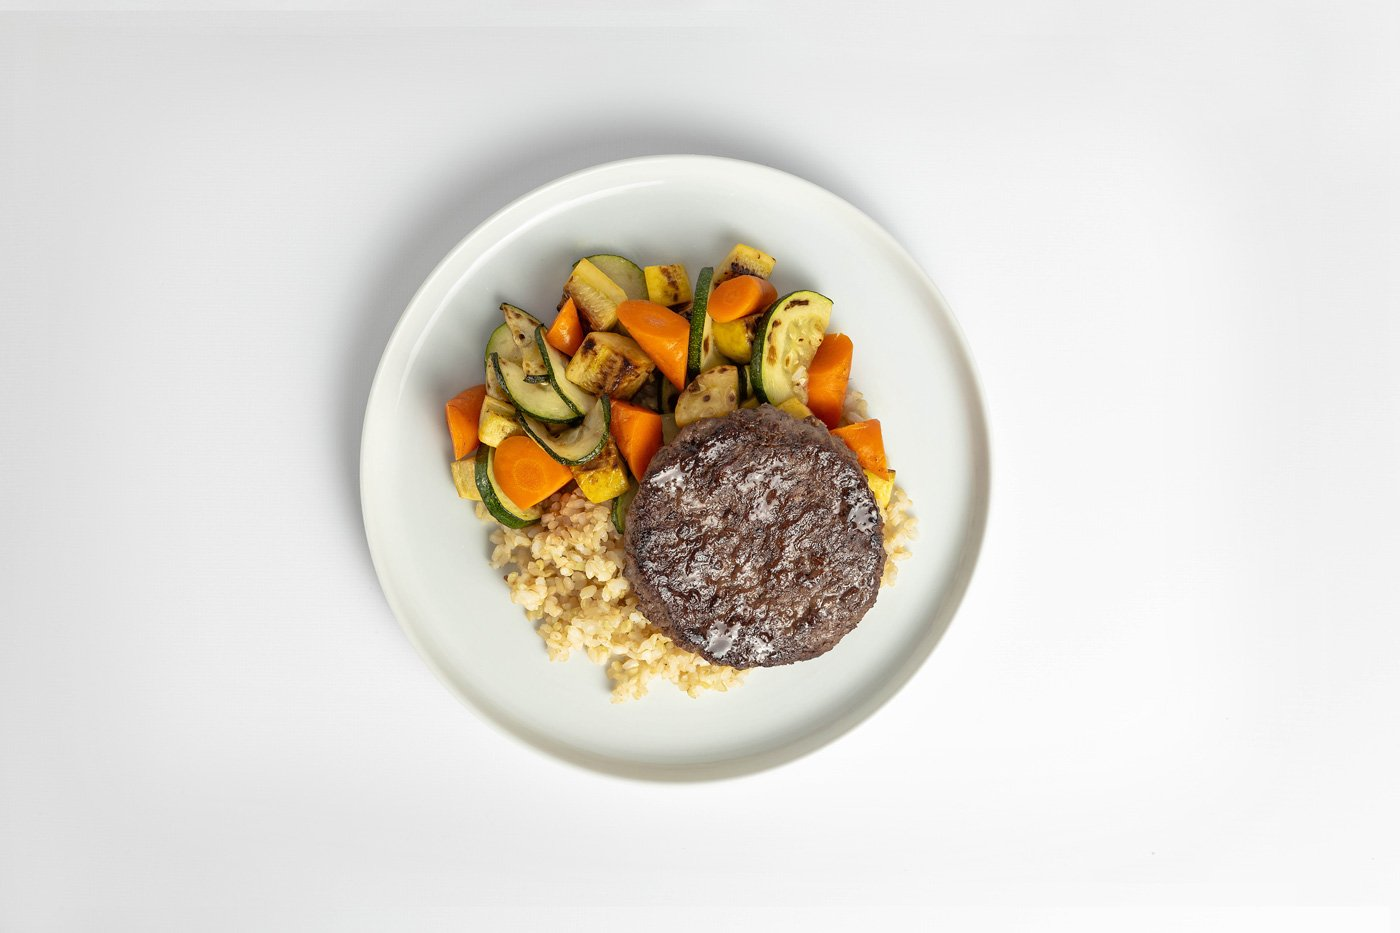 Beef Patty, Brown Rice, Mixed Vegetables Meal Product Image